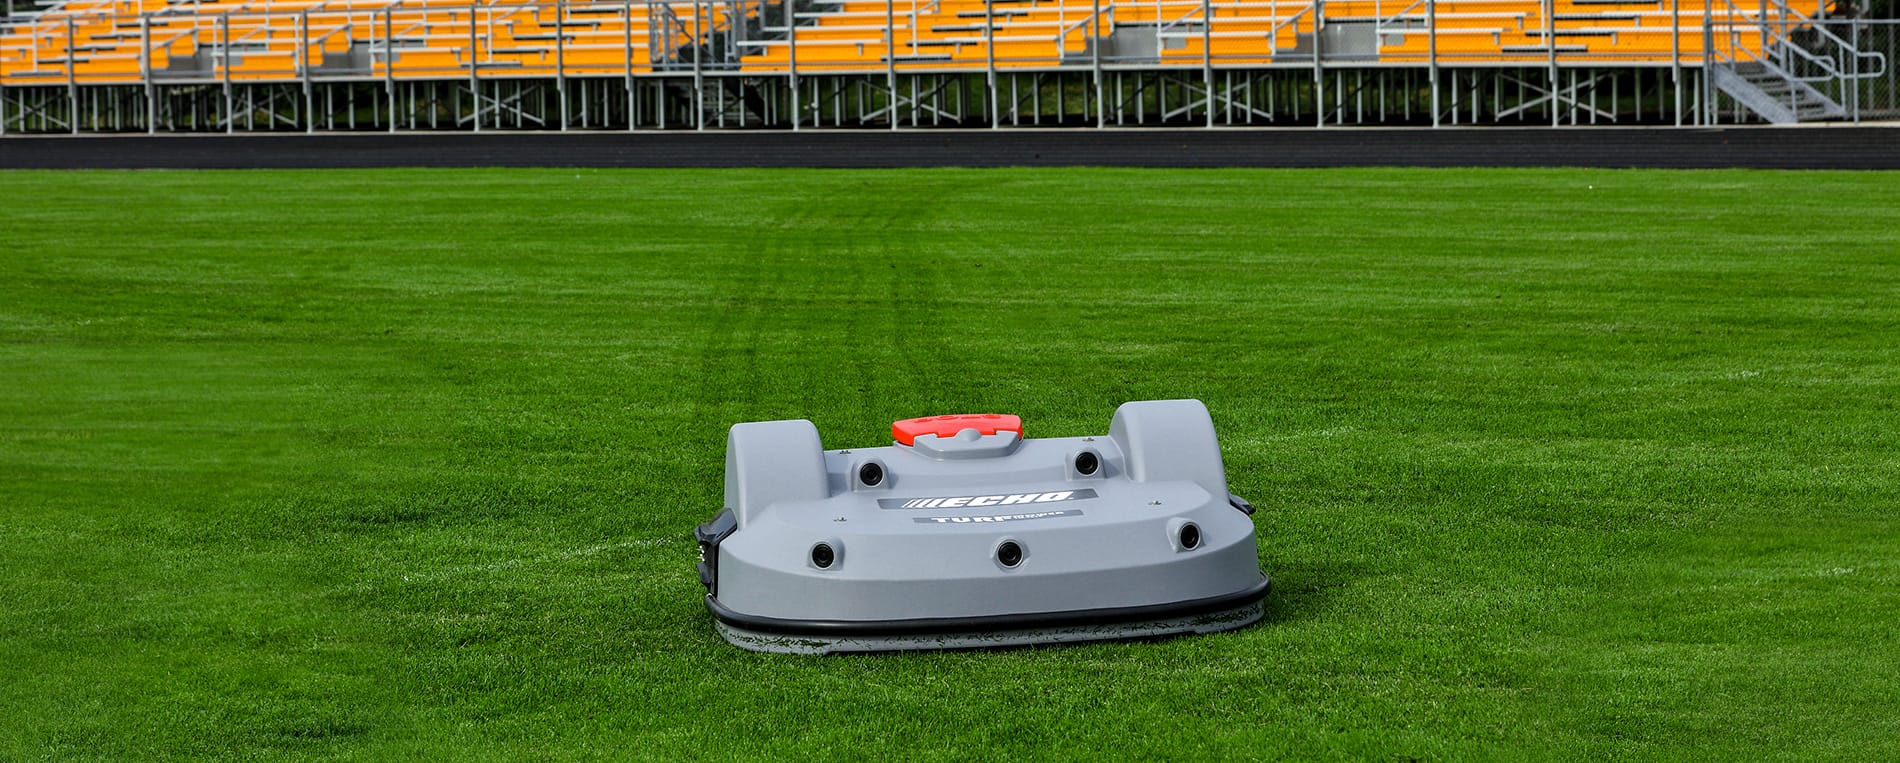 The Echo TM-2000 mowing a field